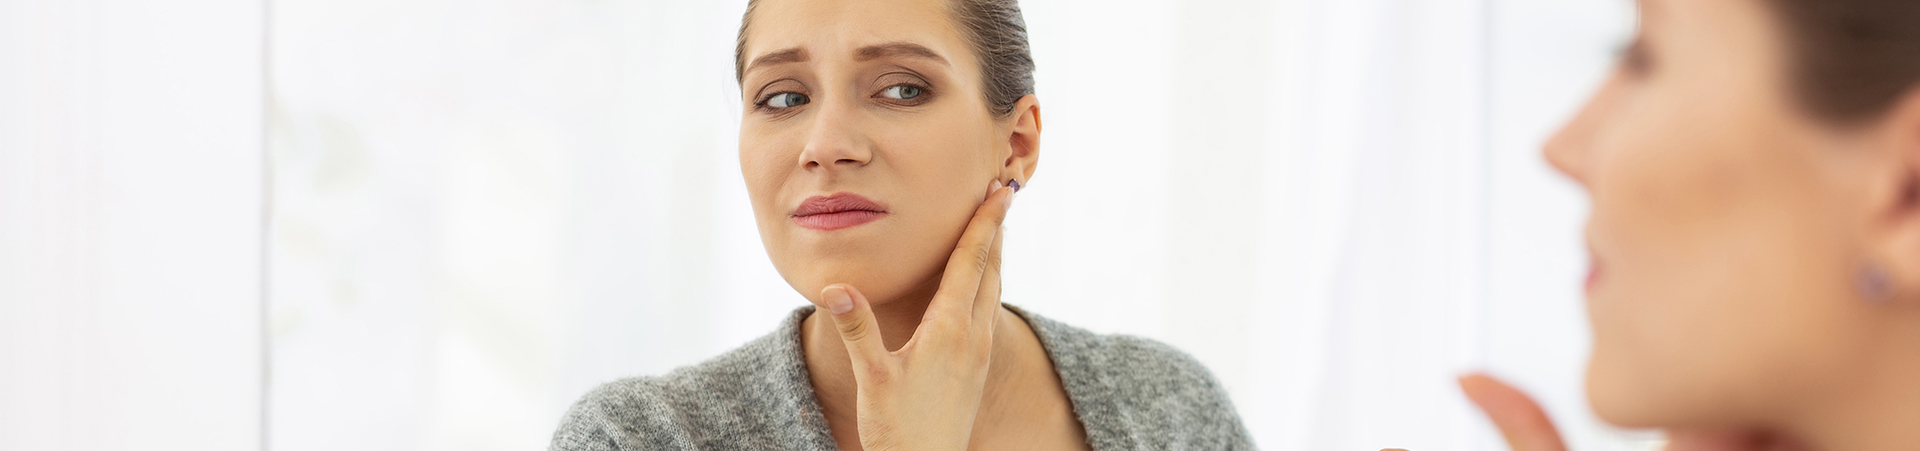 Frowning woman touching her face in front of mirror